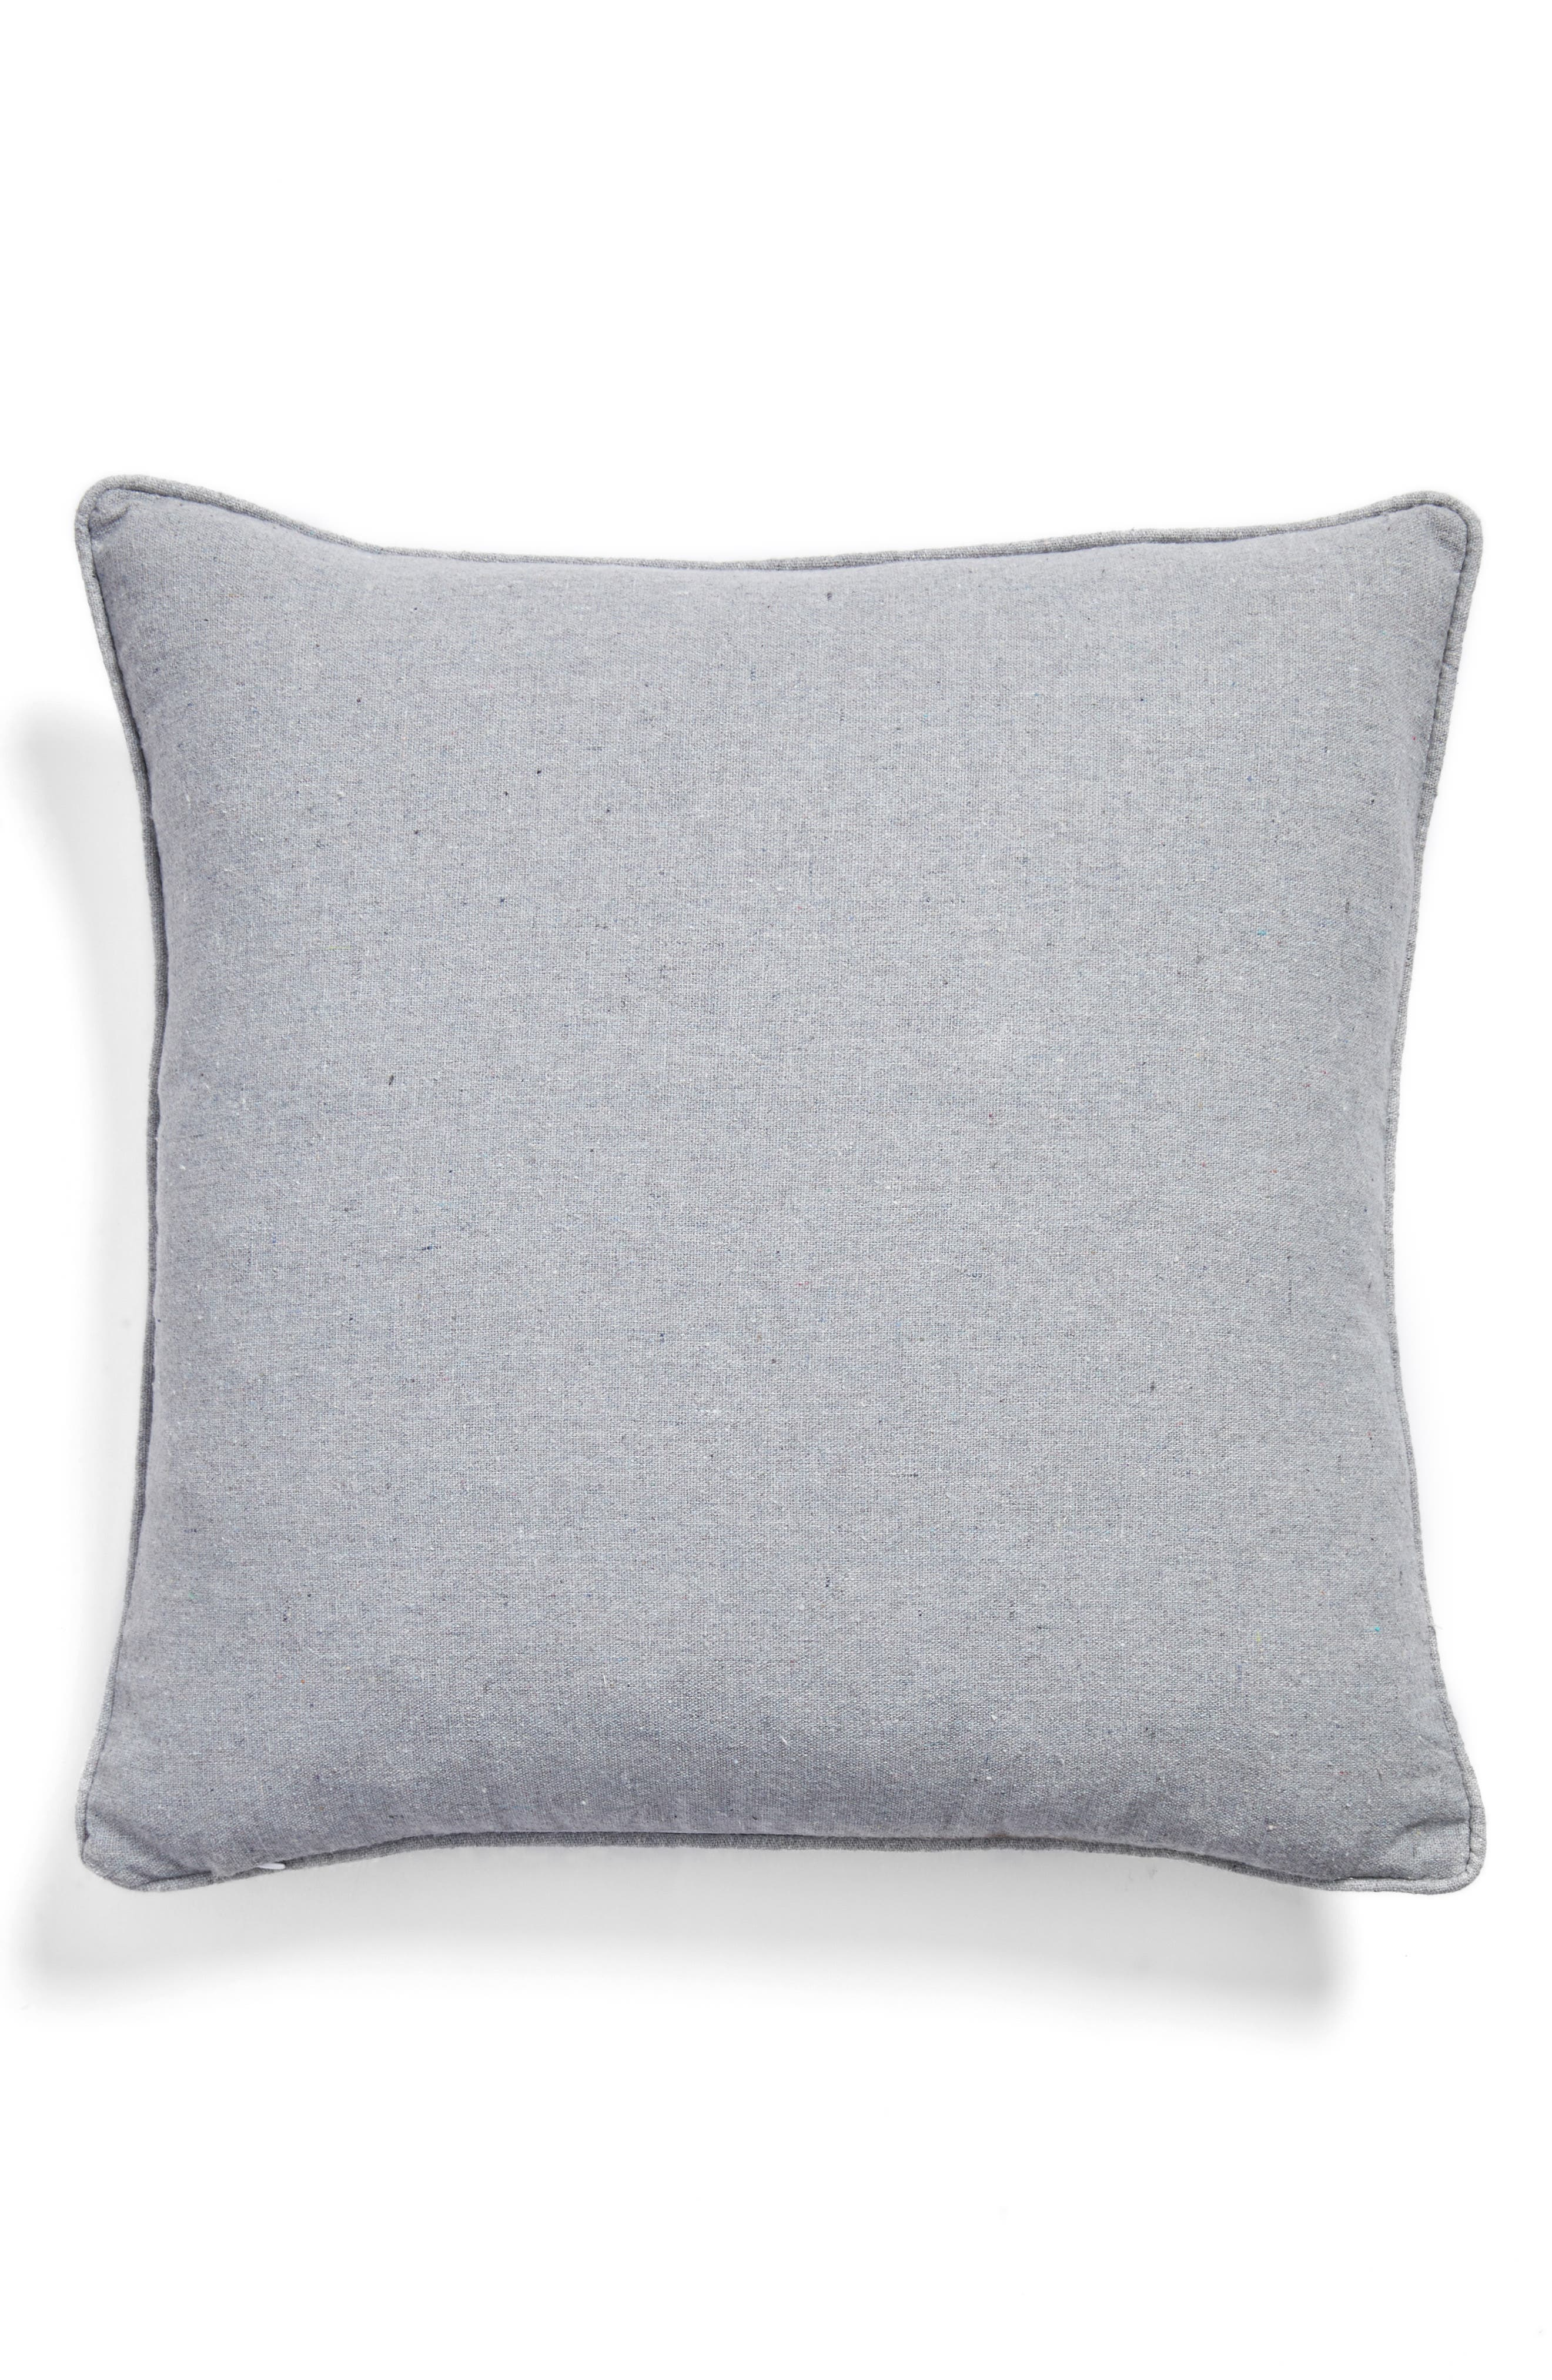 Don't Hate Meditate Pillow,                             Alternate thumbnail 3, color,                             Grey